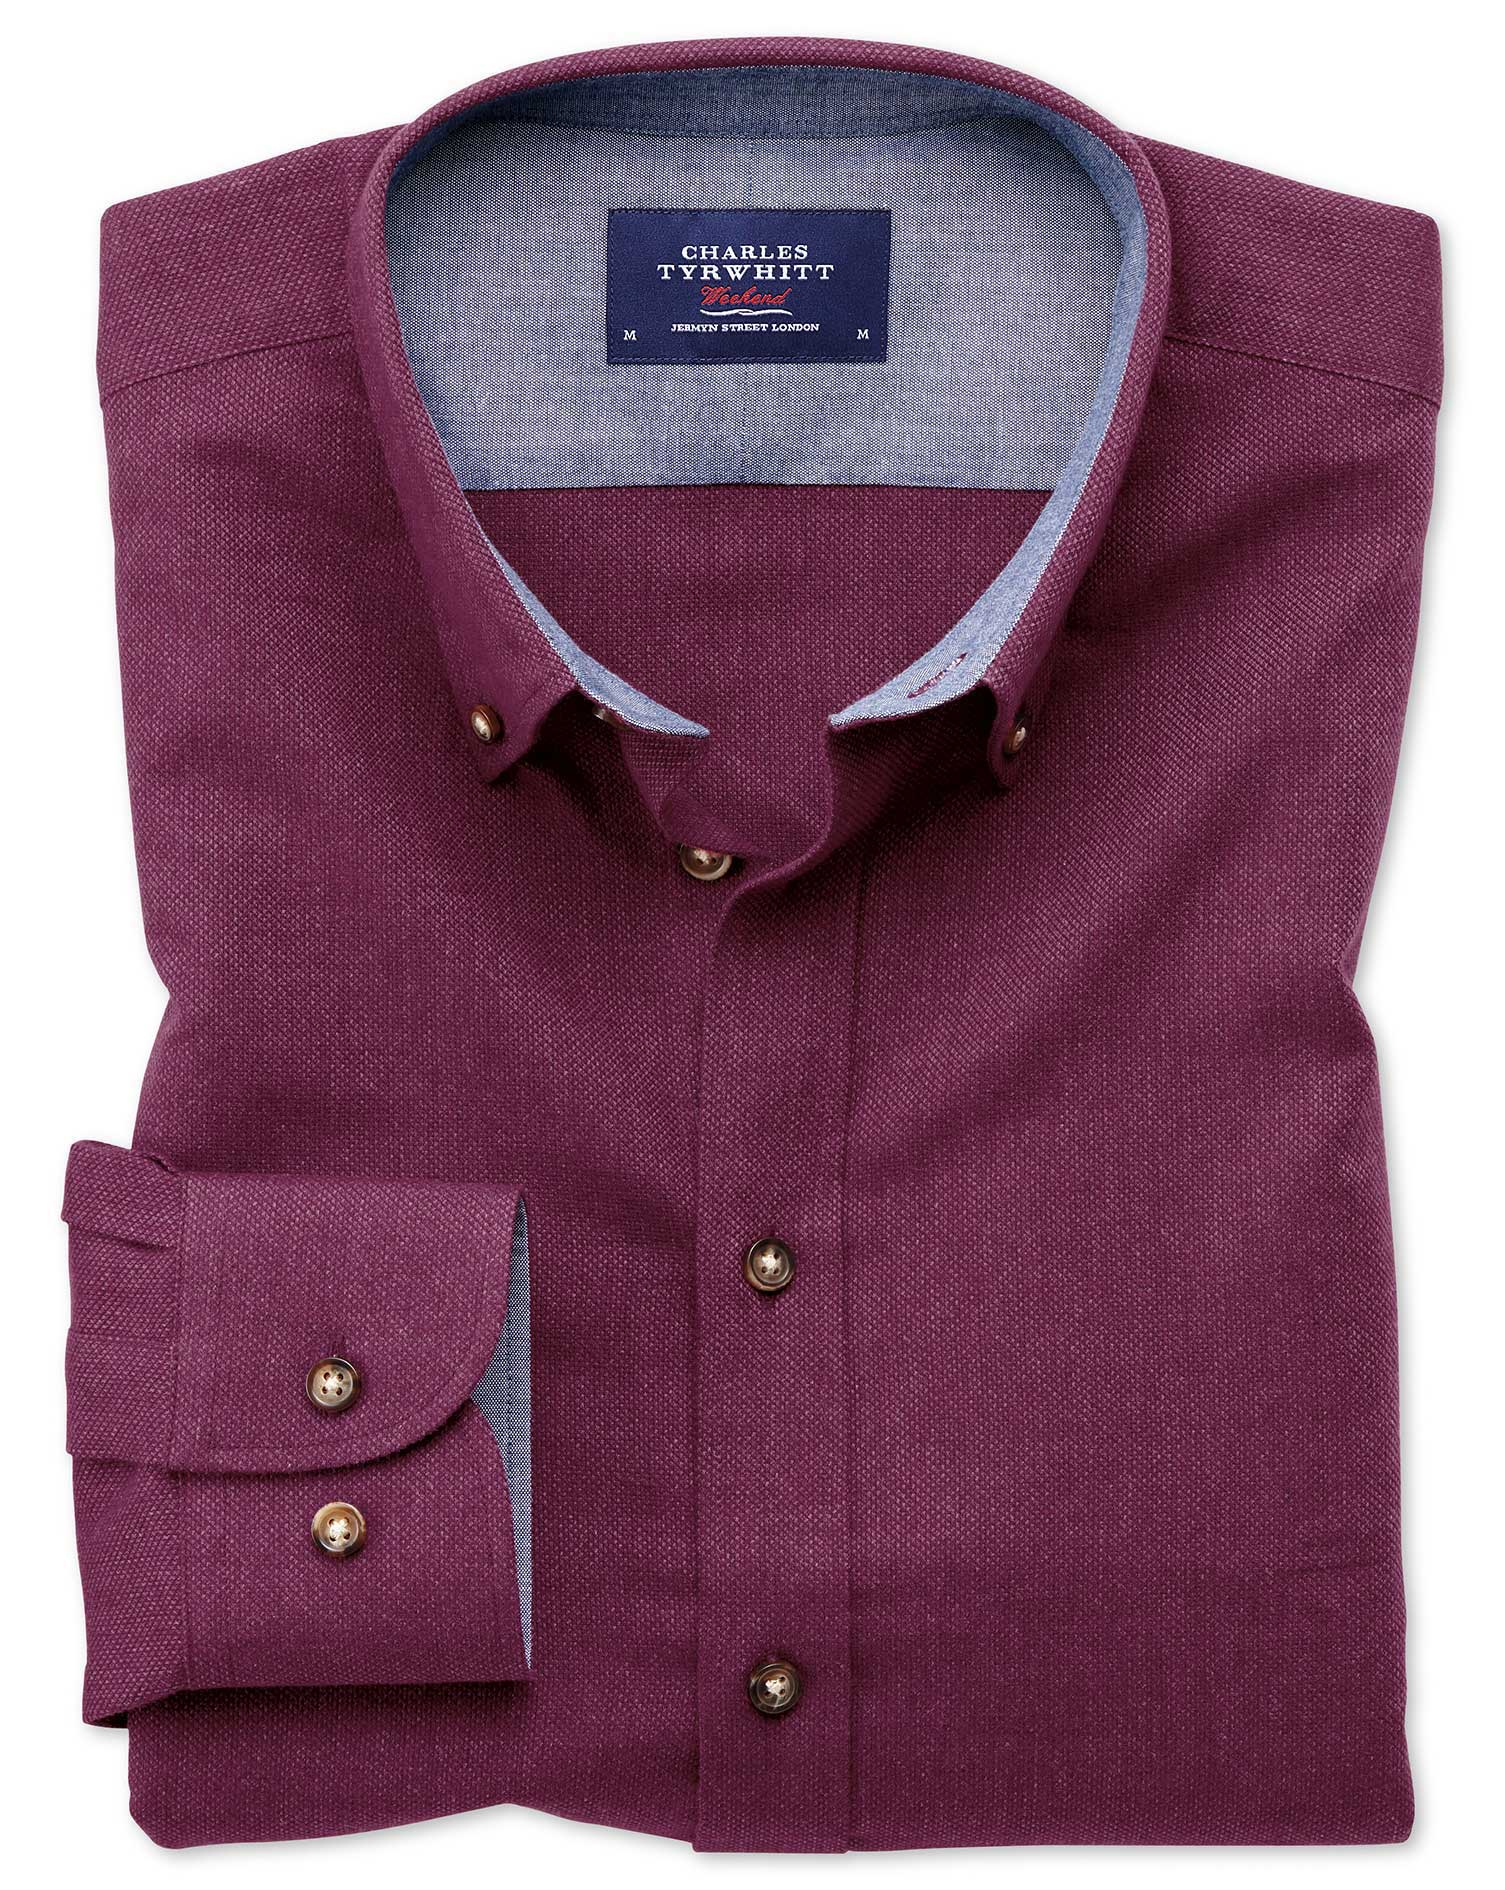 Classic Fit Button-Down Soft Cotton Berry Shirt Single Cuff Size Medium by Charles Tyrwhitt